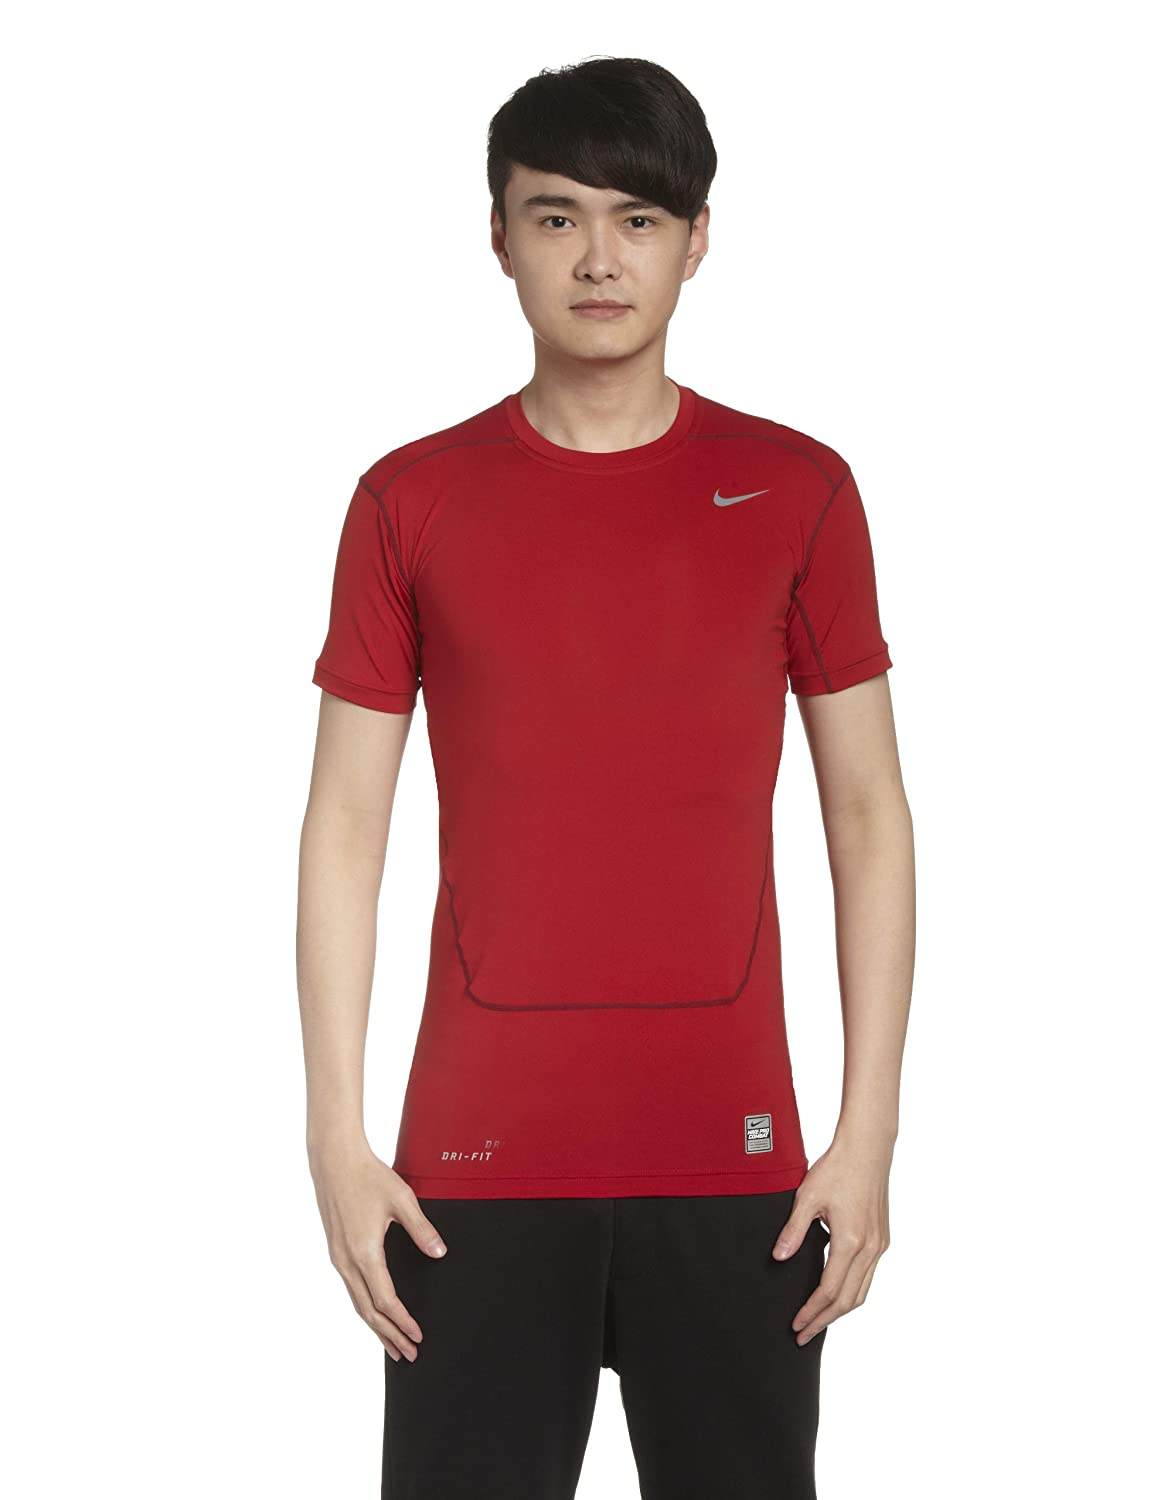 Nike Core Compression 2.0 Short Sleeve Top (Red) B008FPYX7IRed XL 46-48\